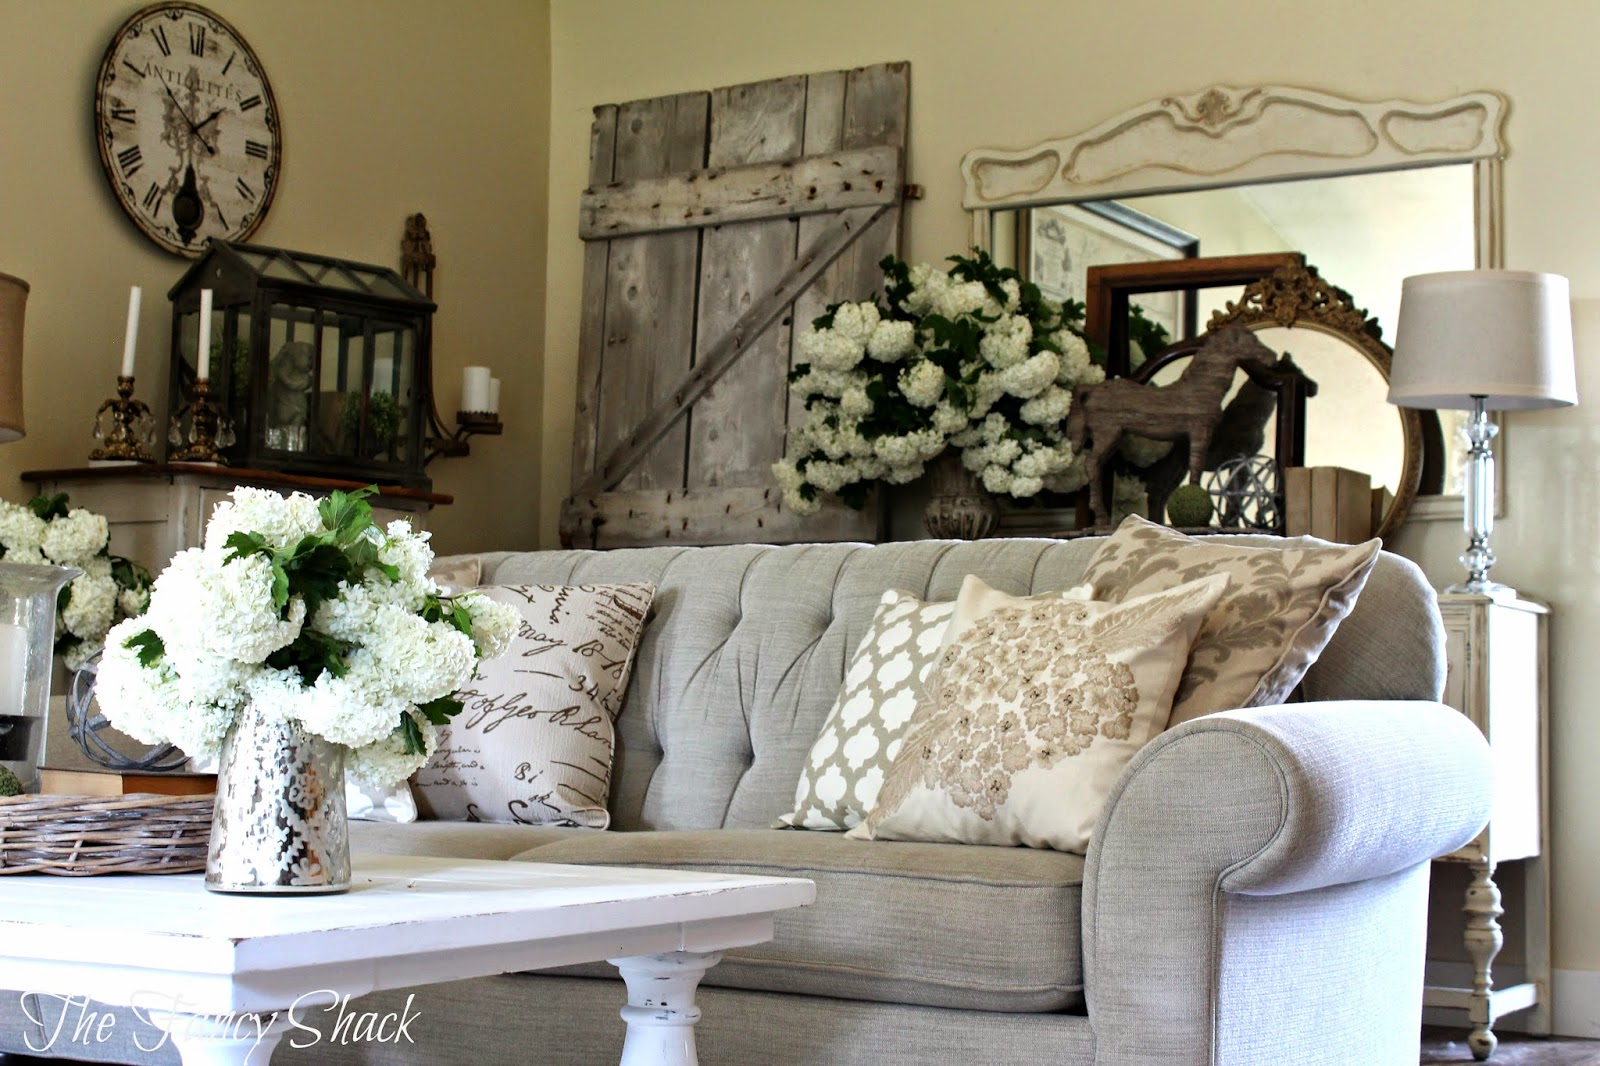 The fancy shack new living room furniture - Rustic chic living room ...